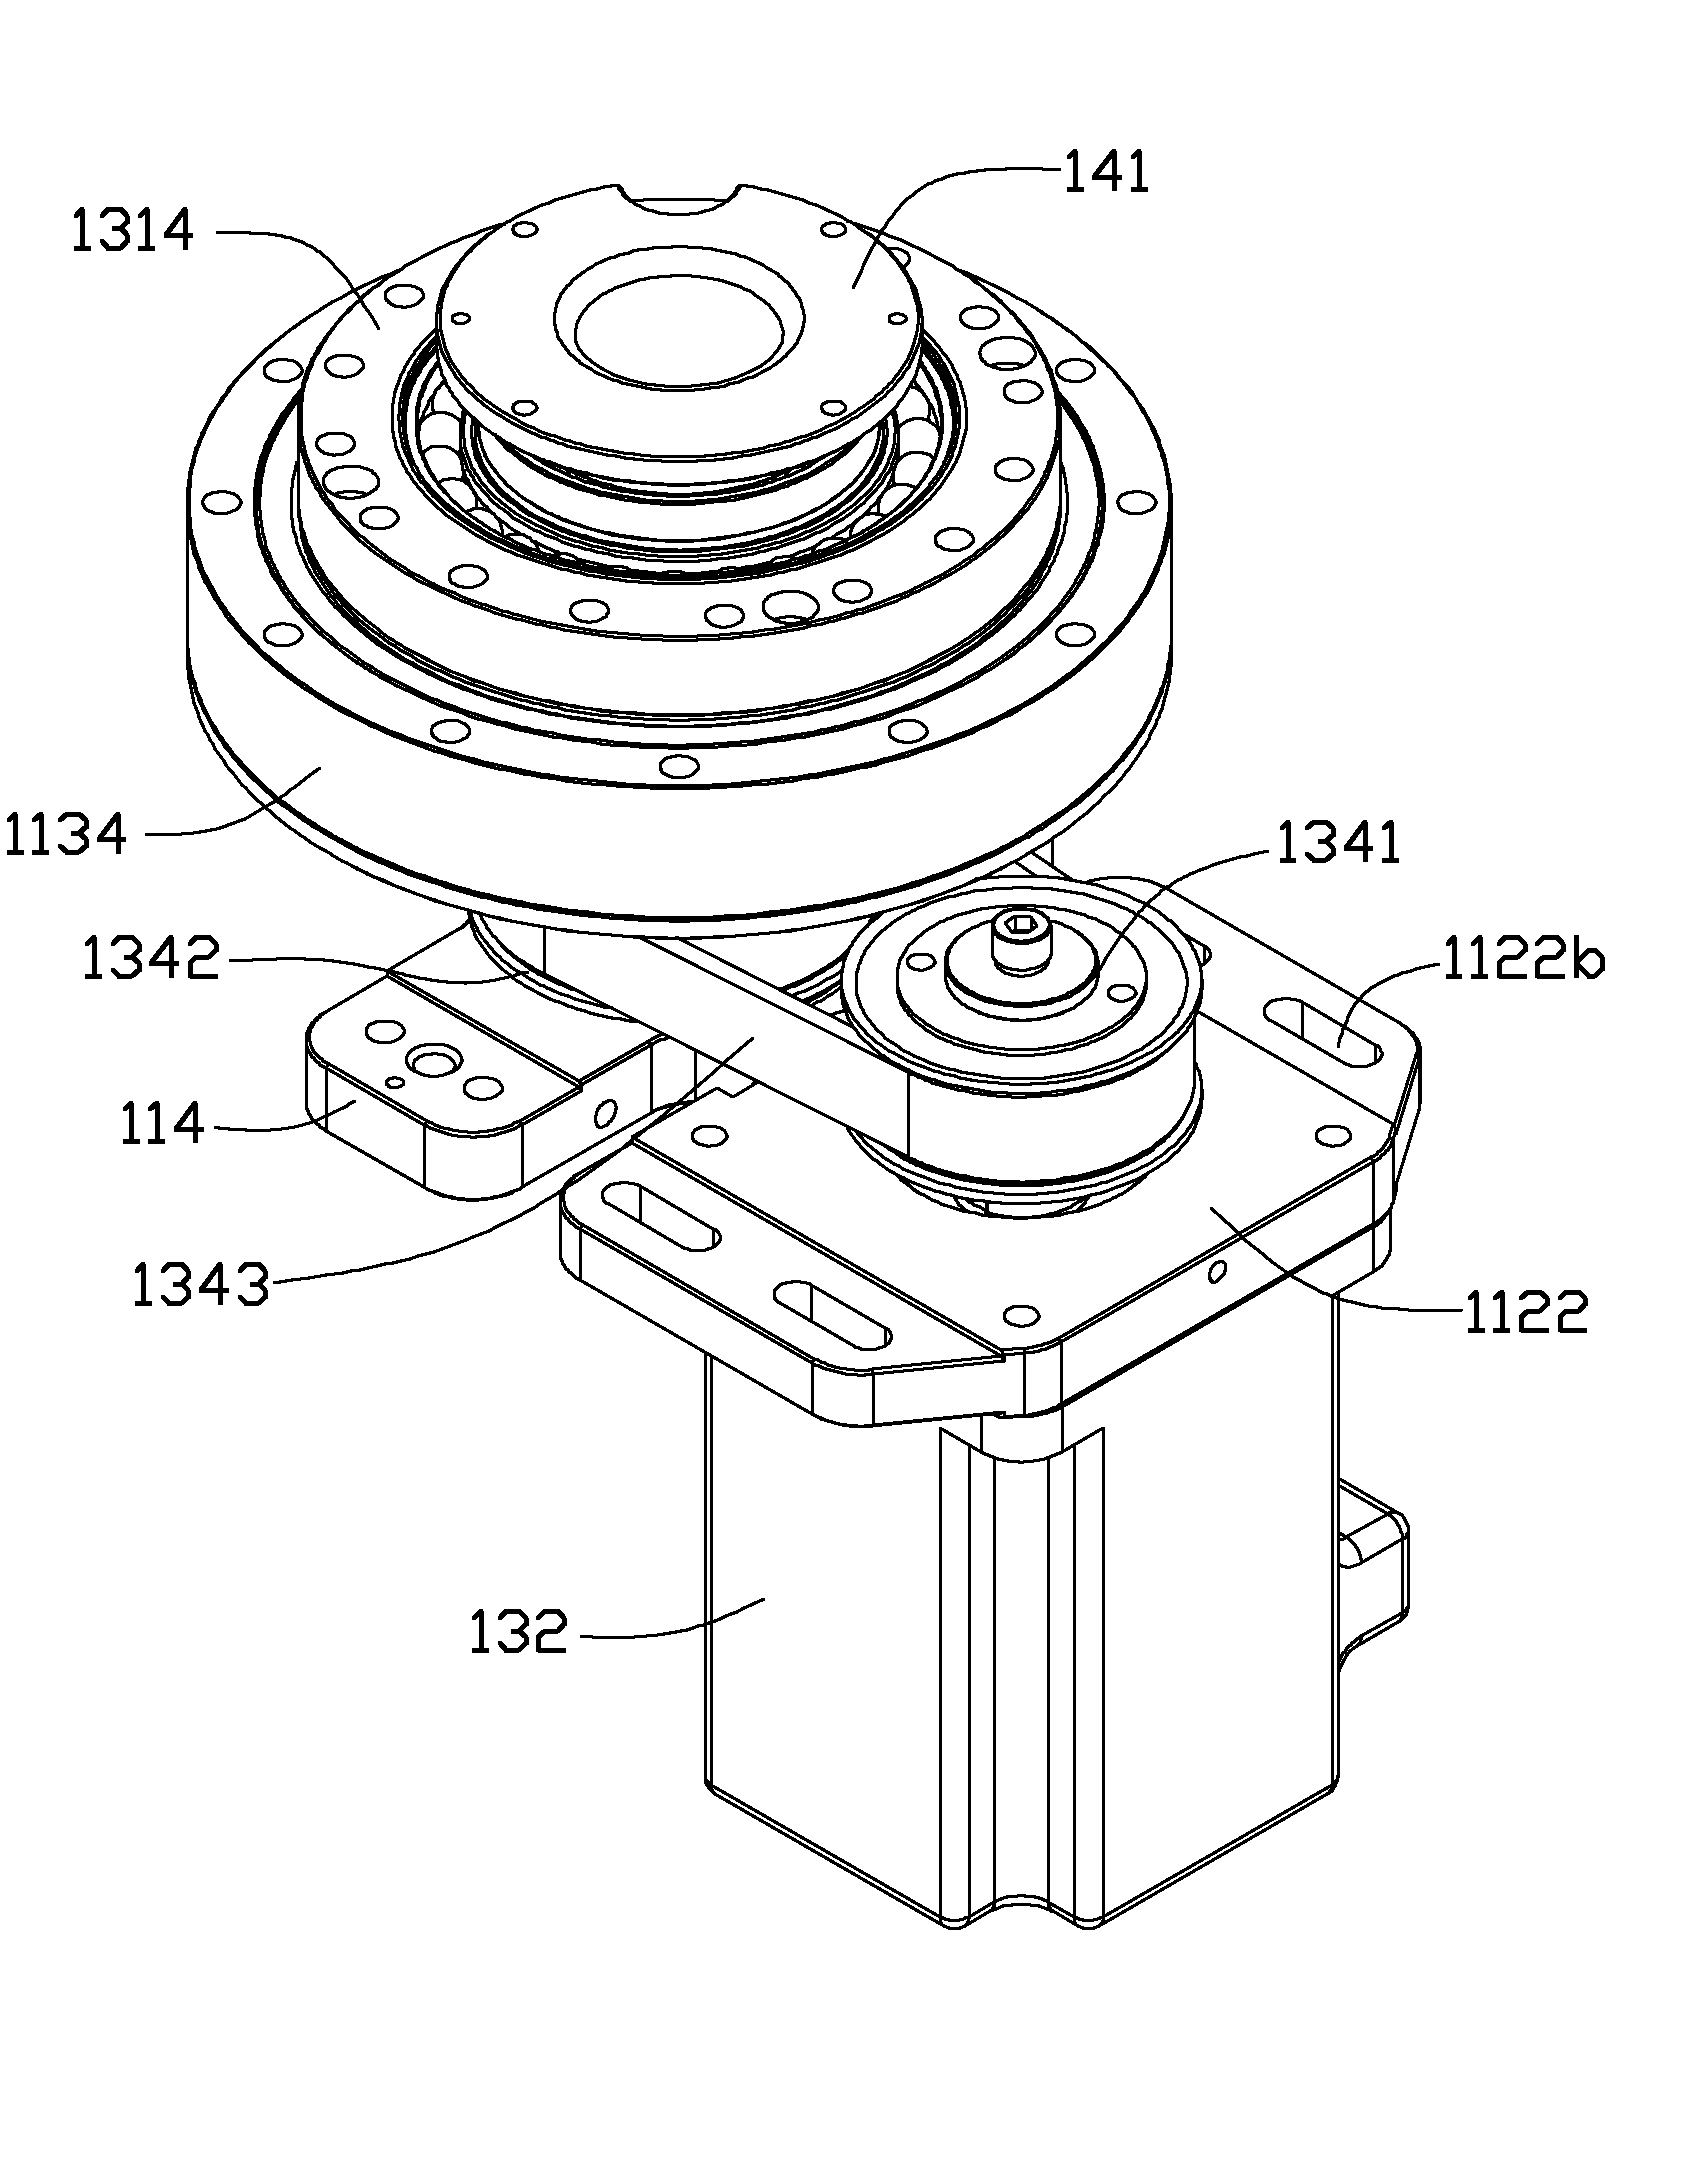 patent us8584548 - robot arm assembly with harmonic drive